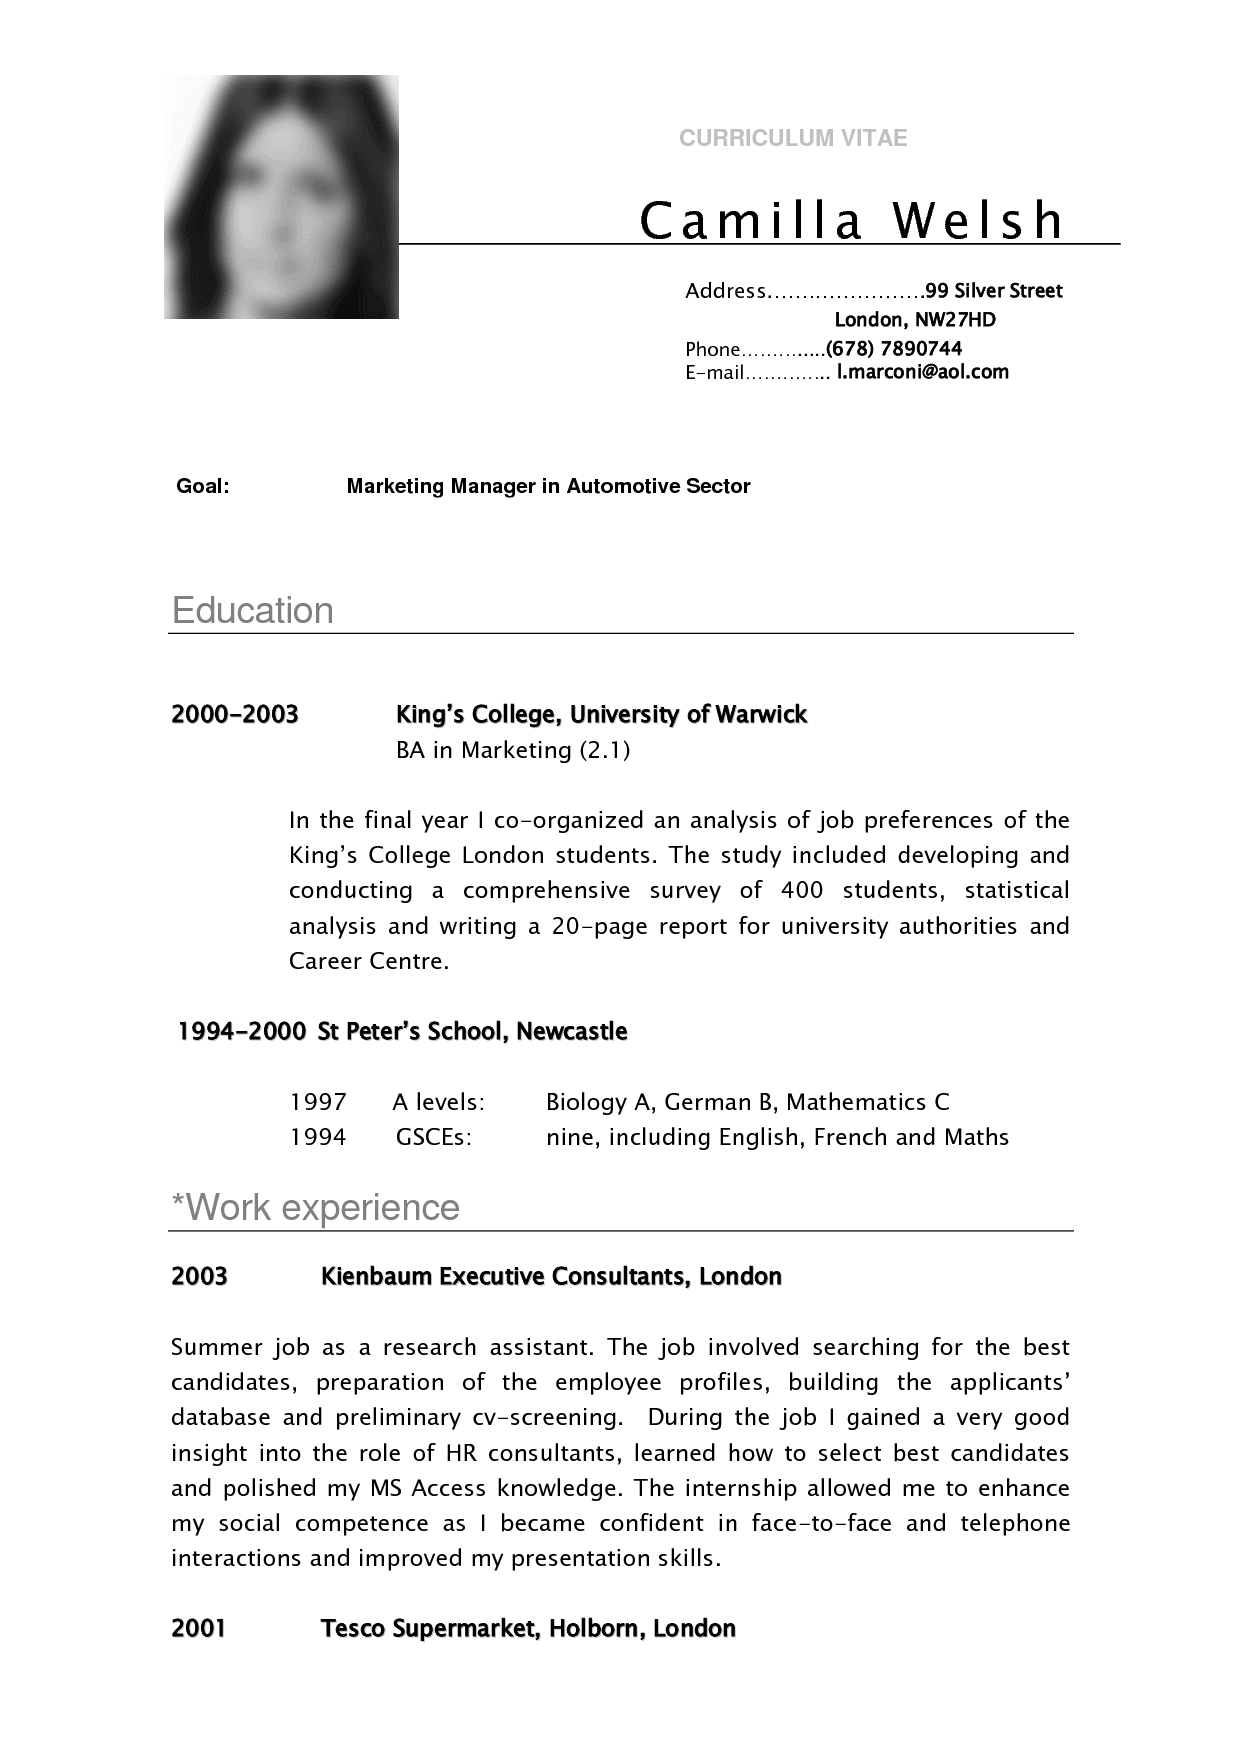 Sample Resume And Cv | Resume CV Cover Letter